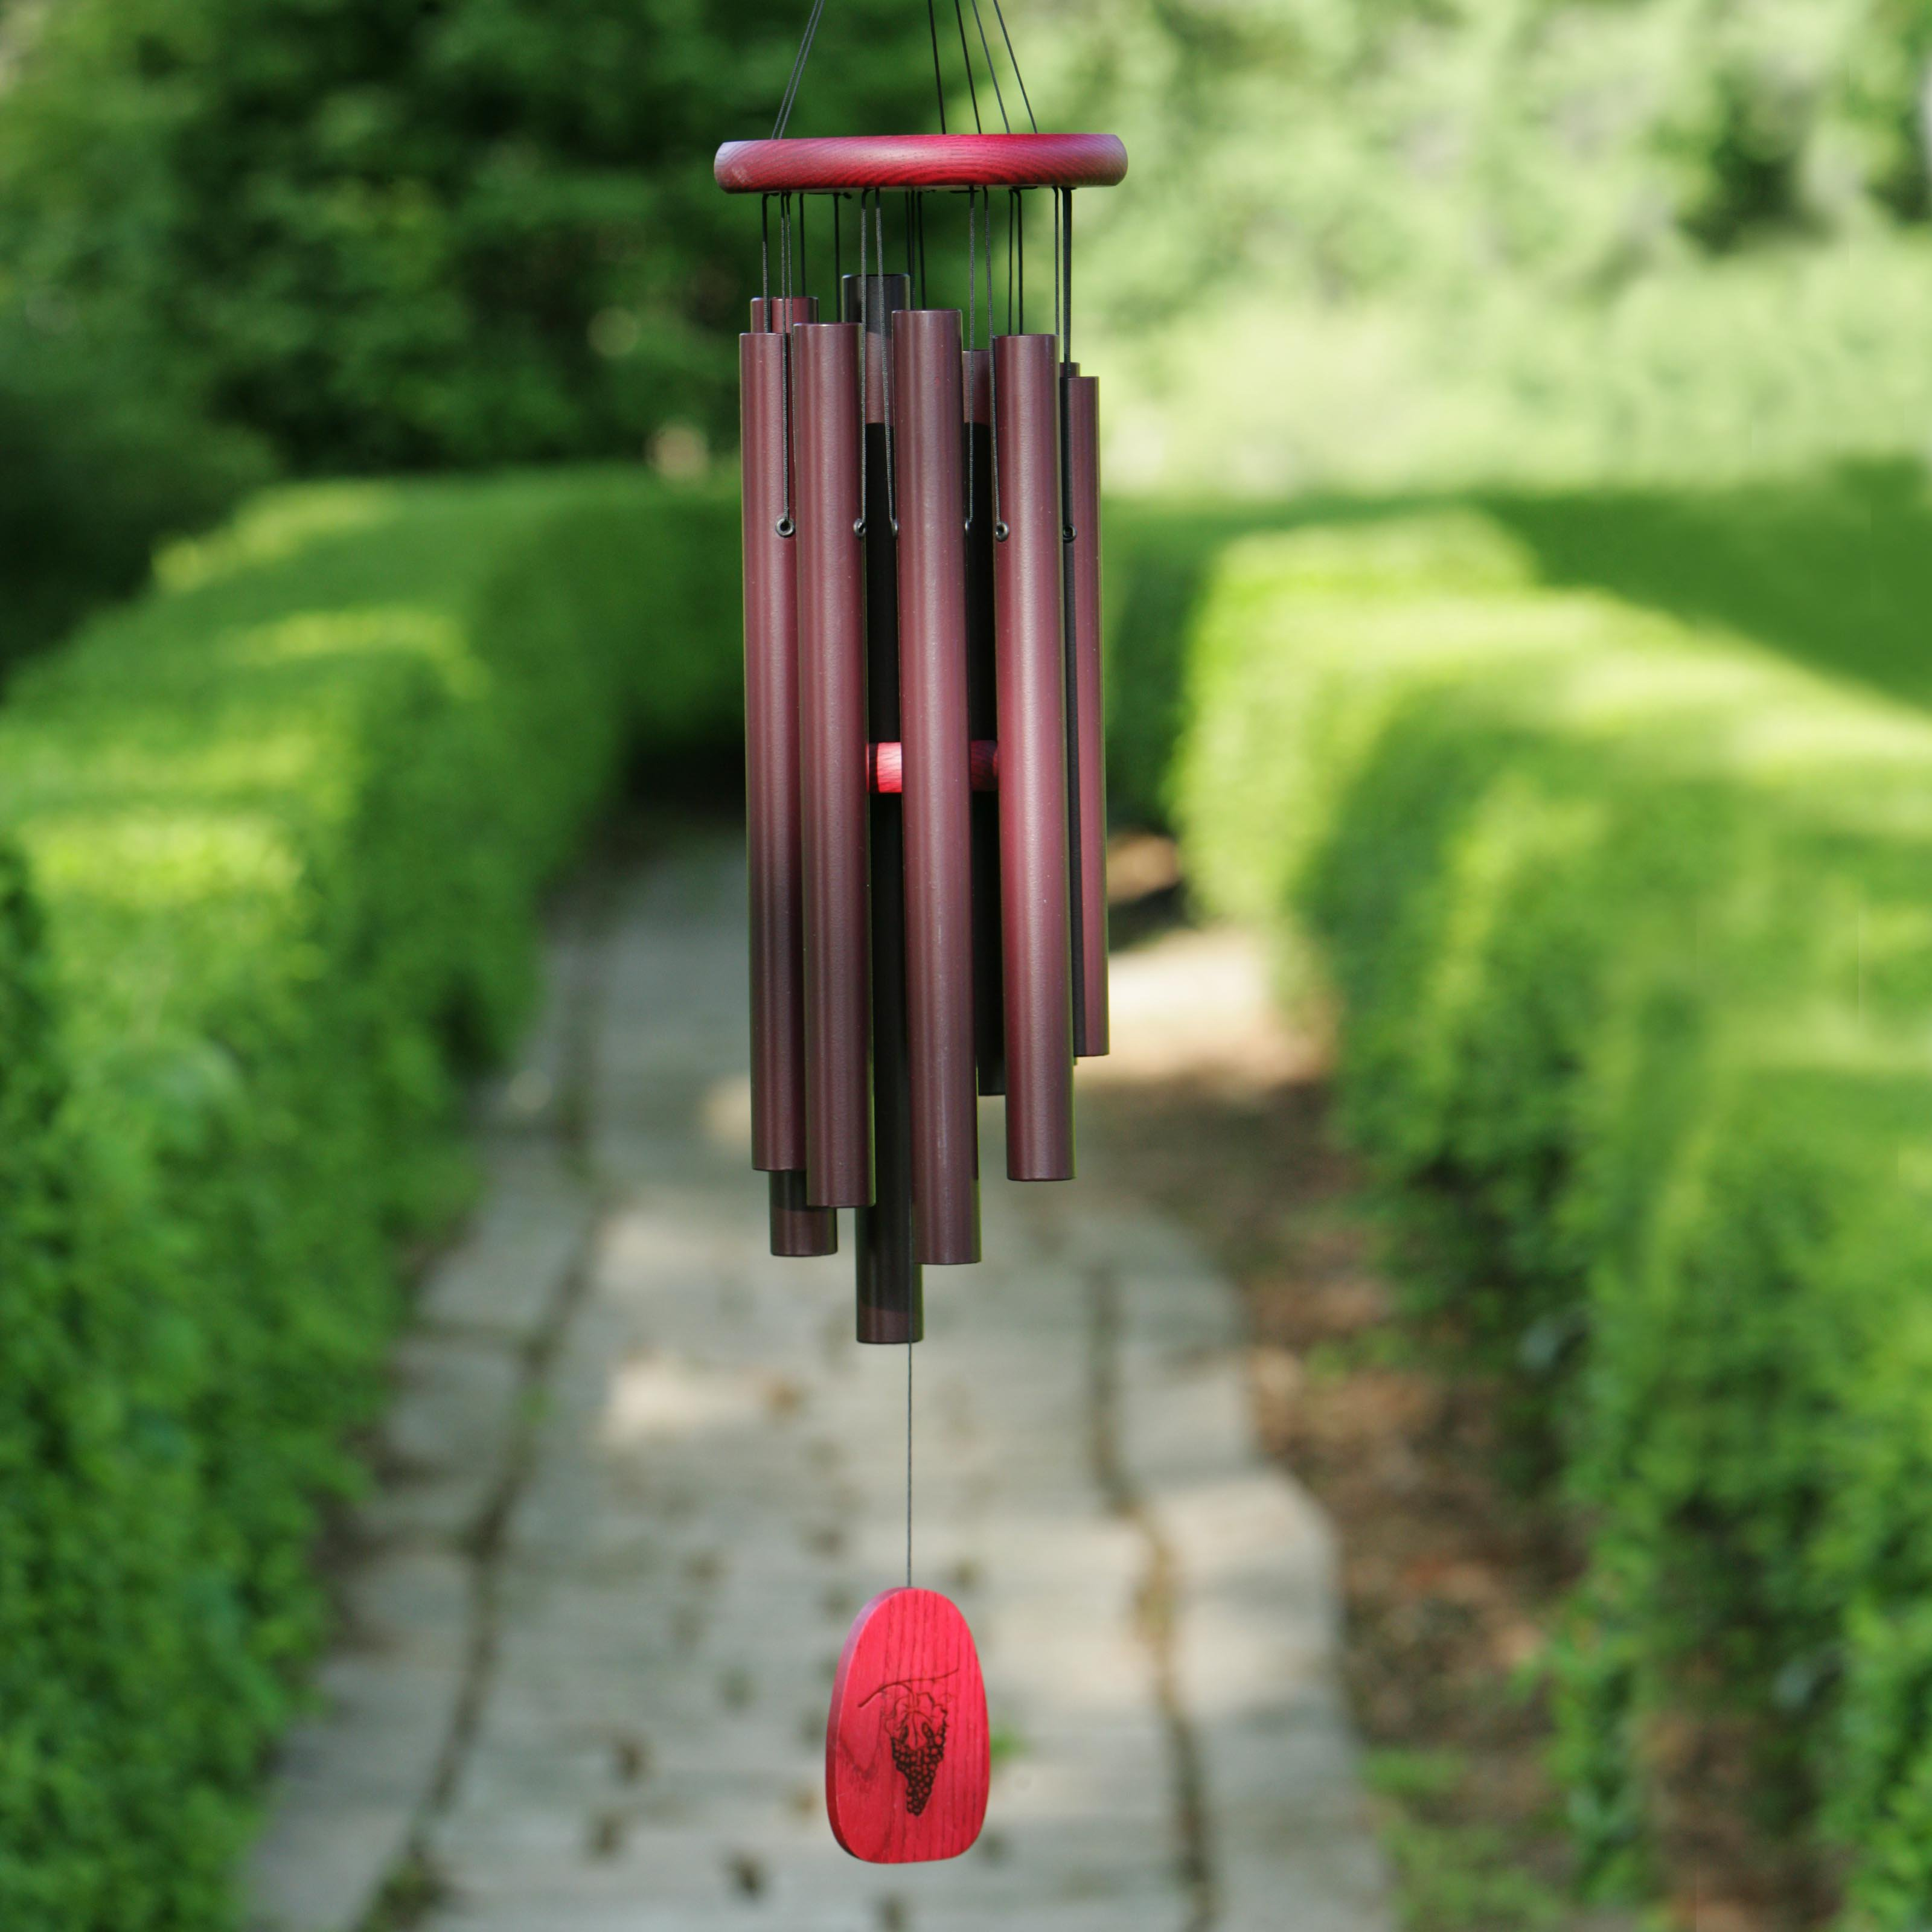 Wind chime photo